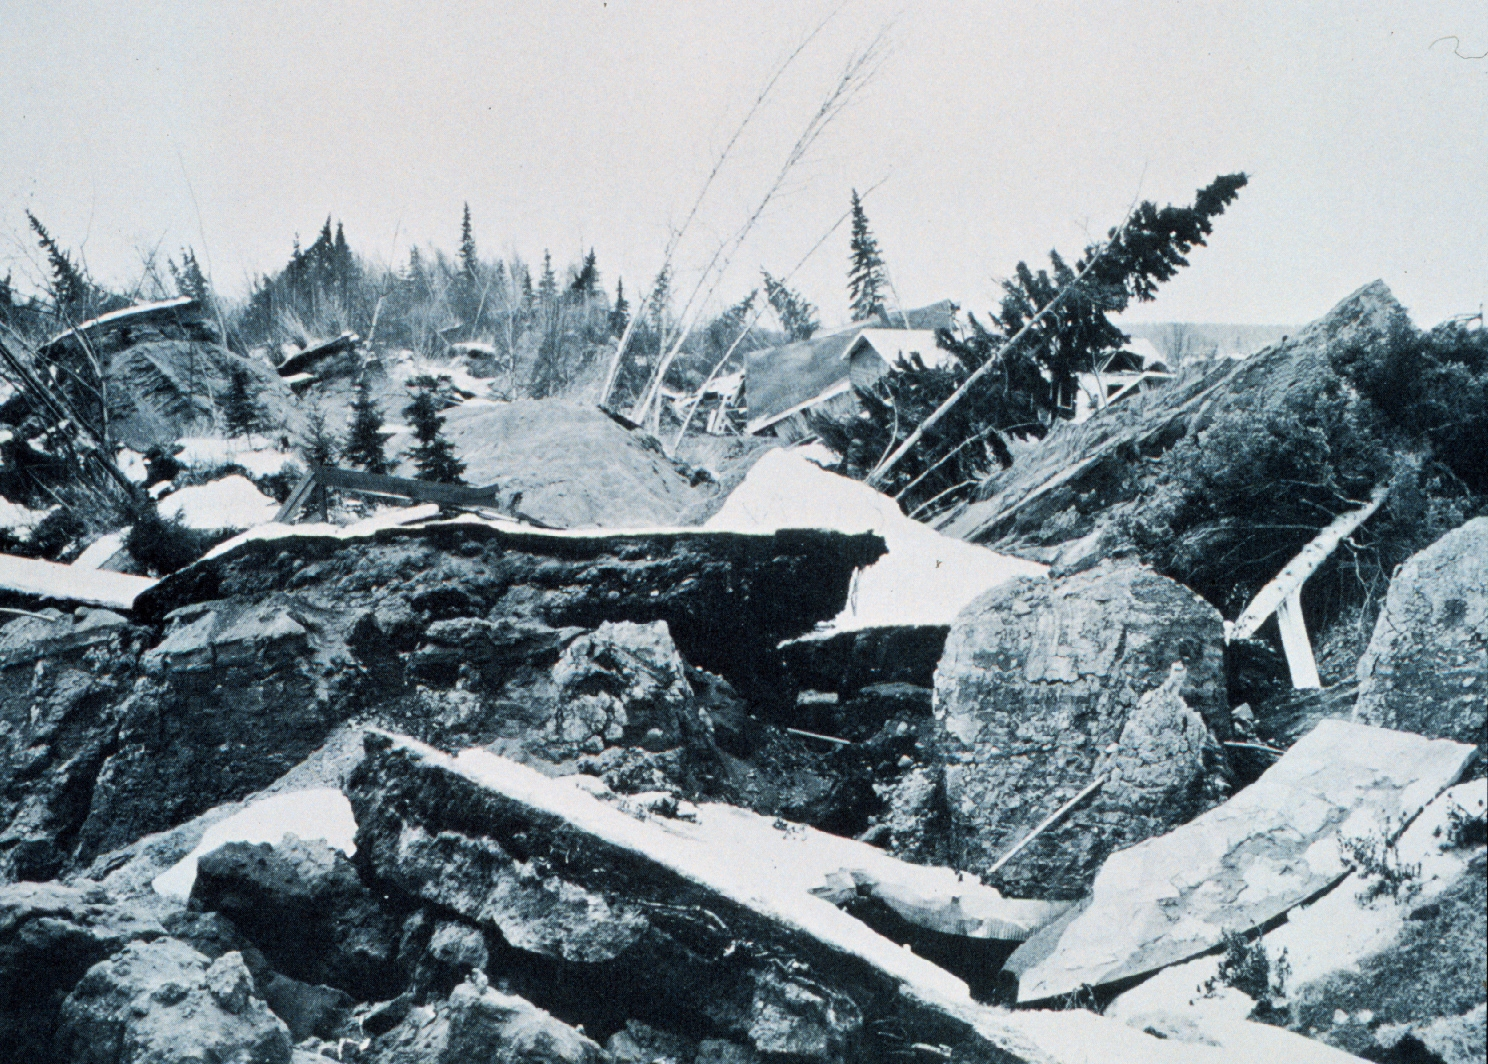 alaska earthquake - photo #13